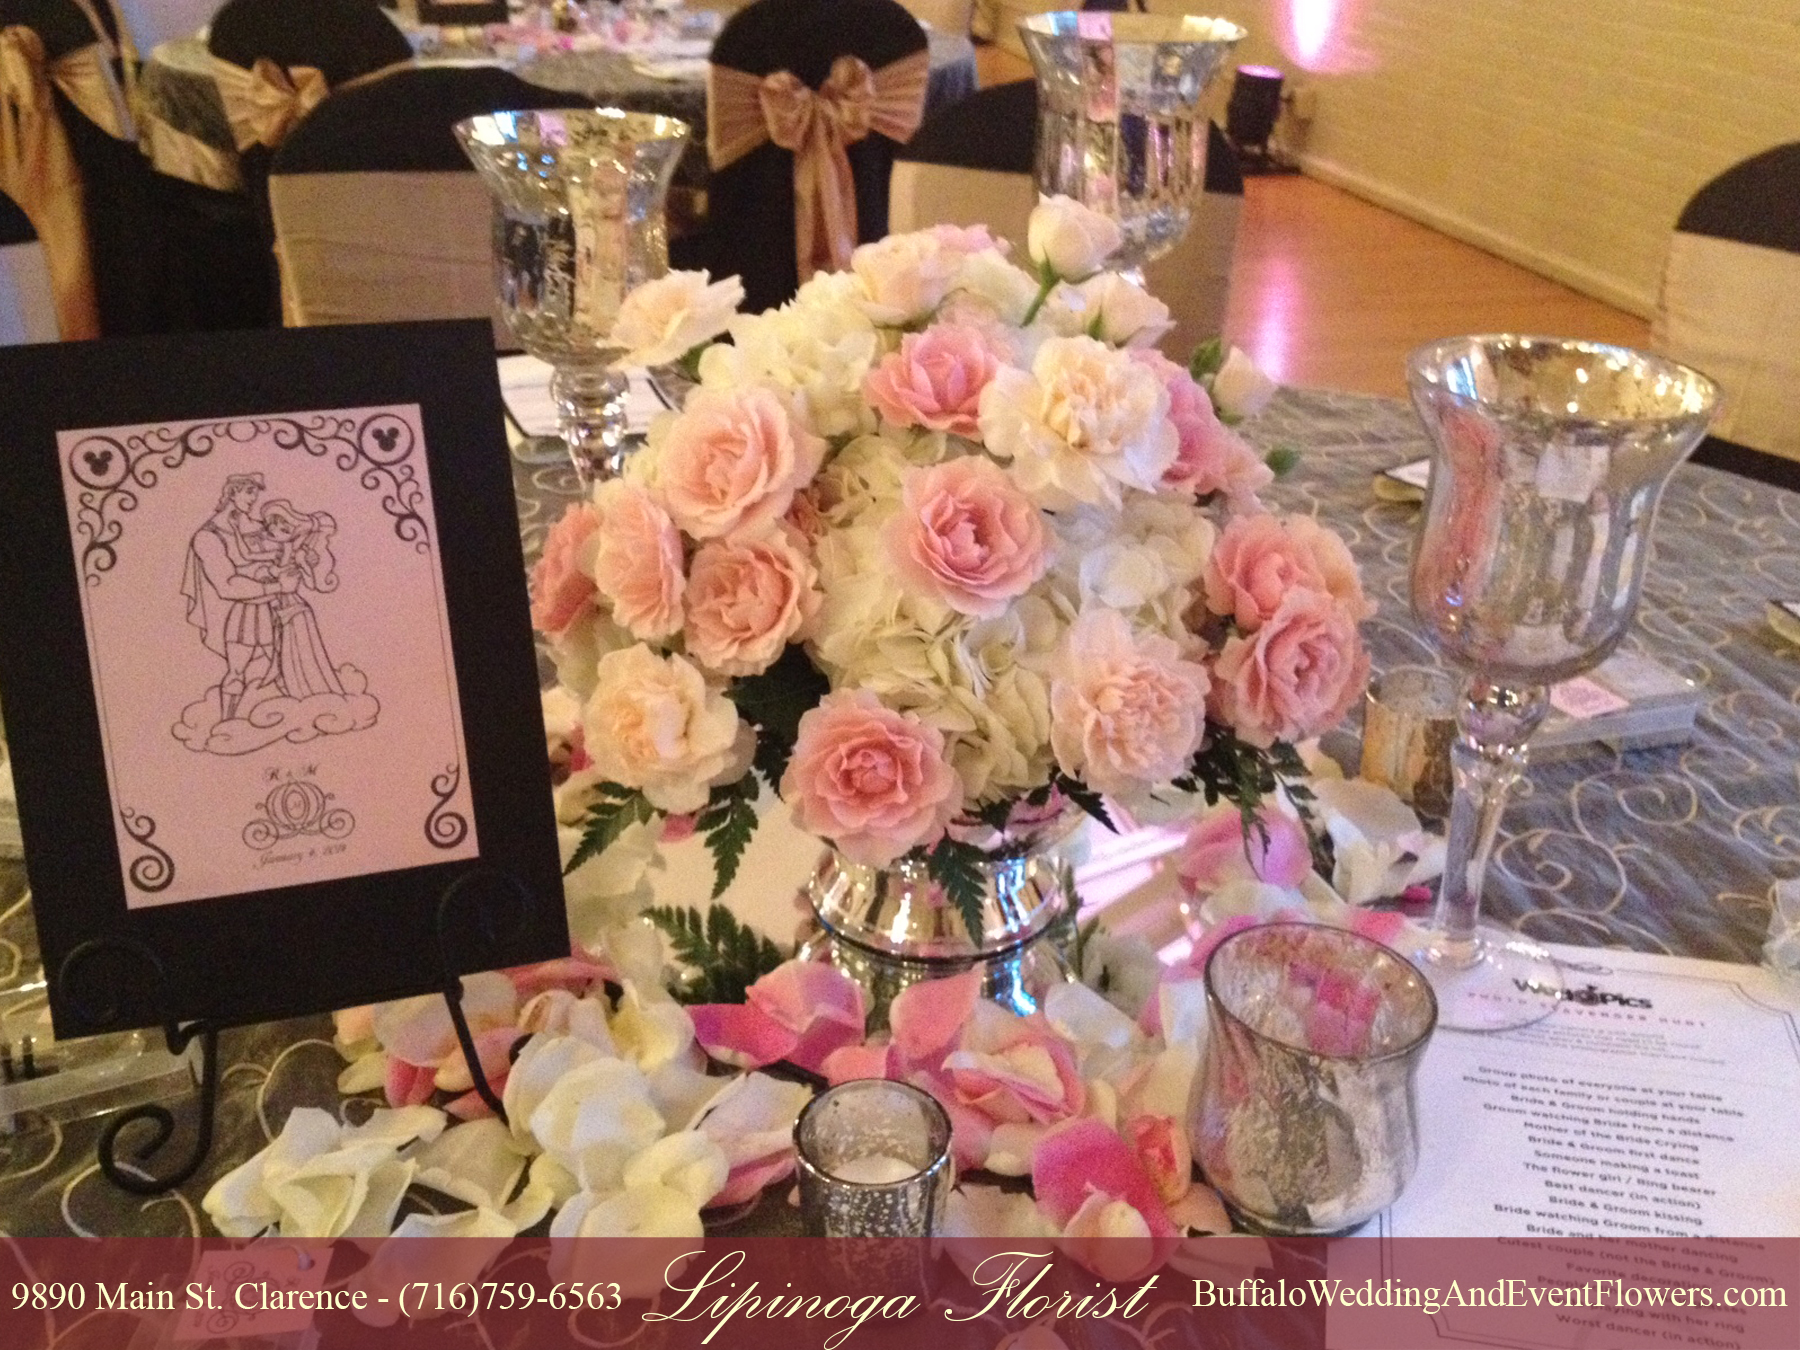 Escort Card Table Flowers Buffalo Wedding Event Flowers By